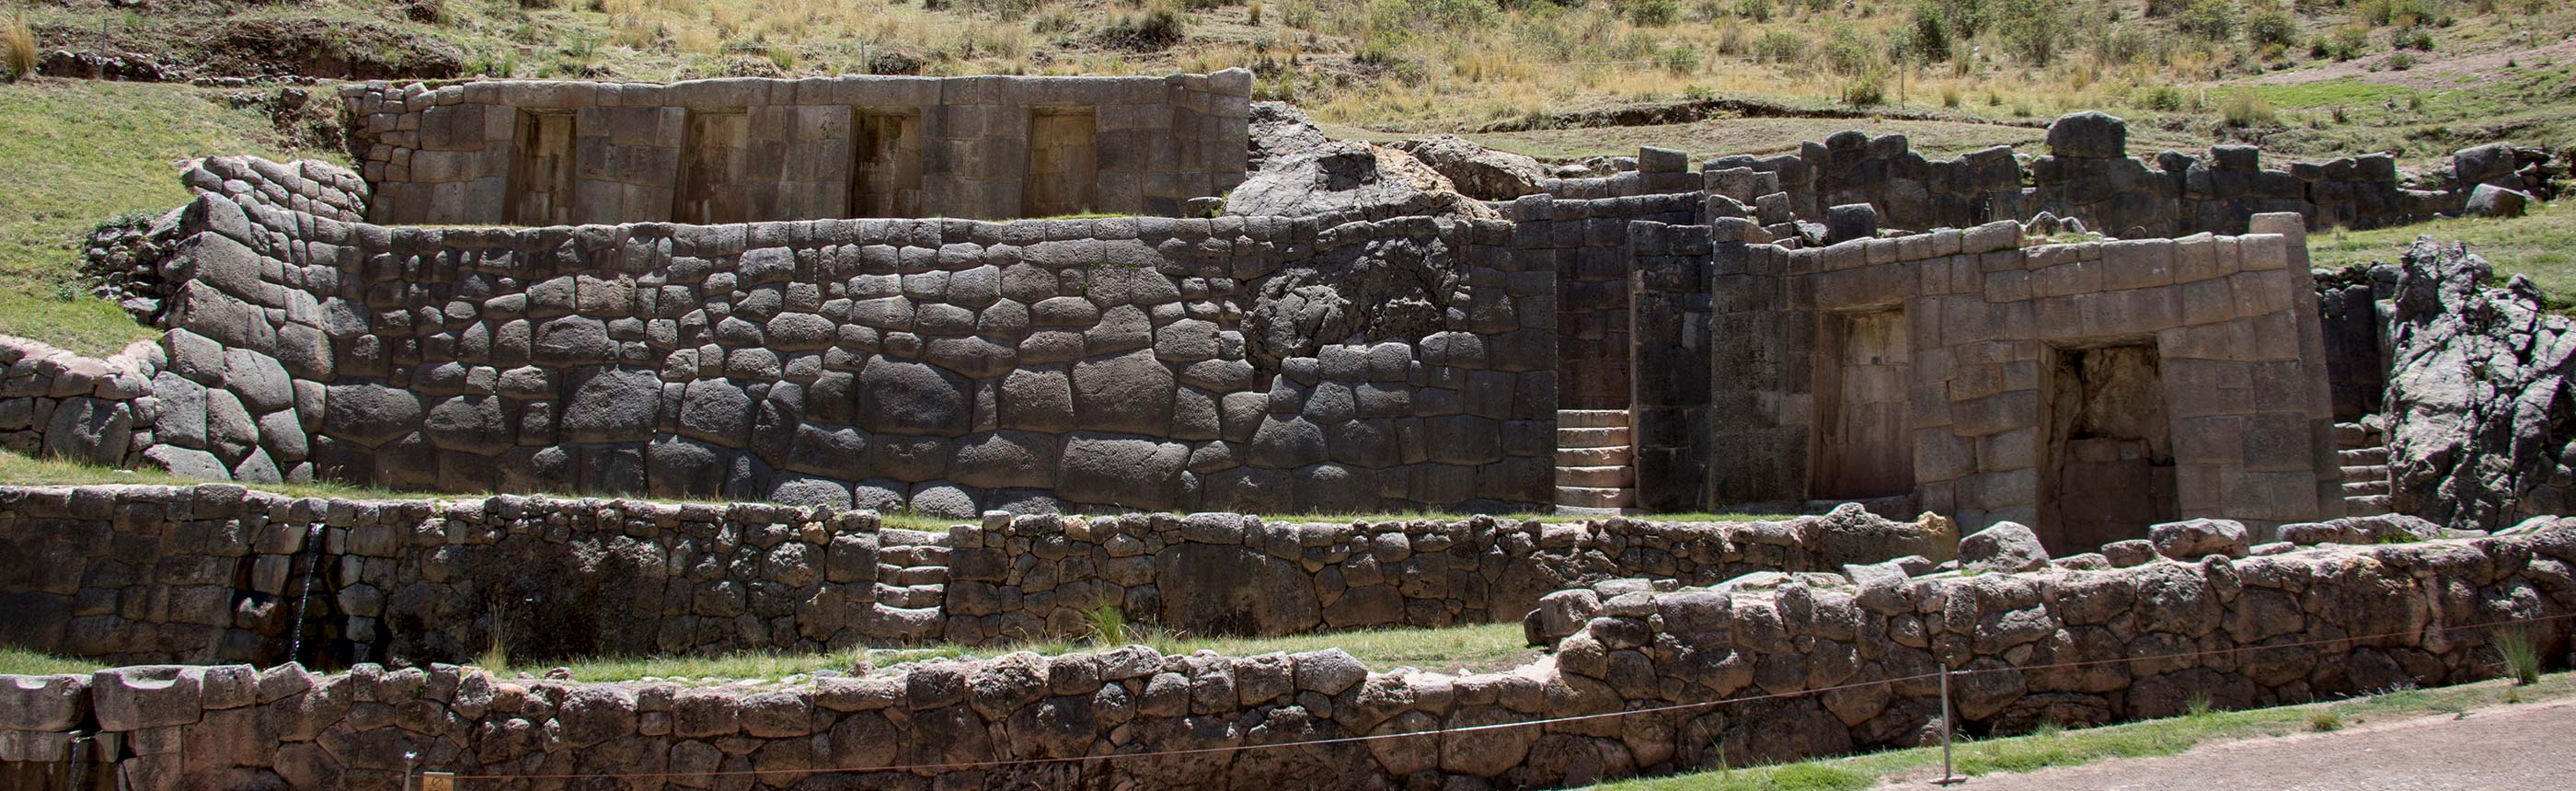 City Tour The inca Baths of Tambomachay in Cusco